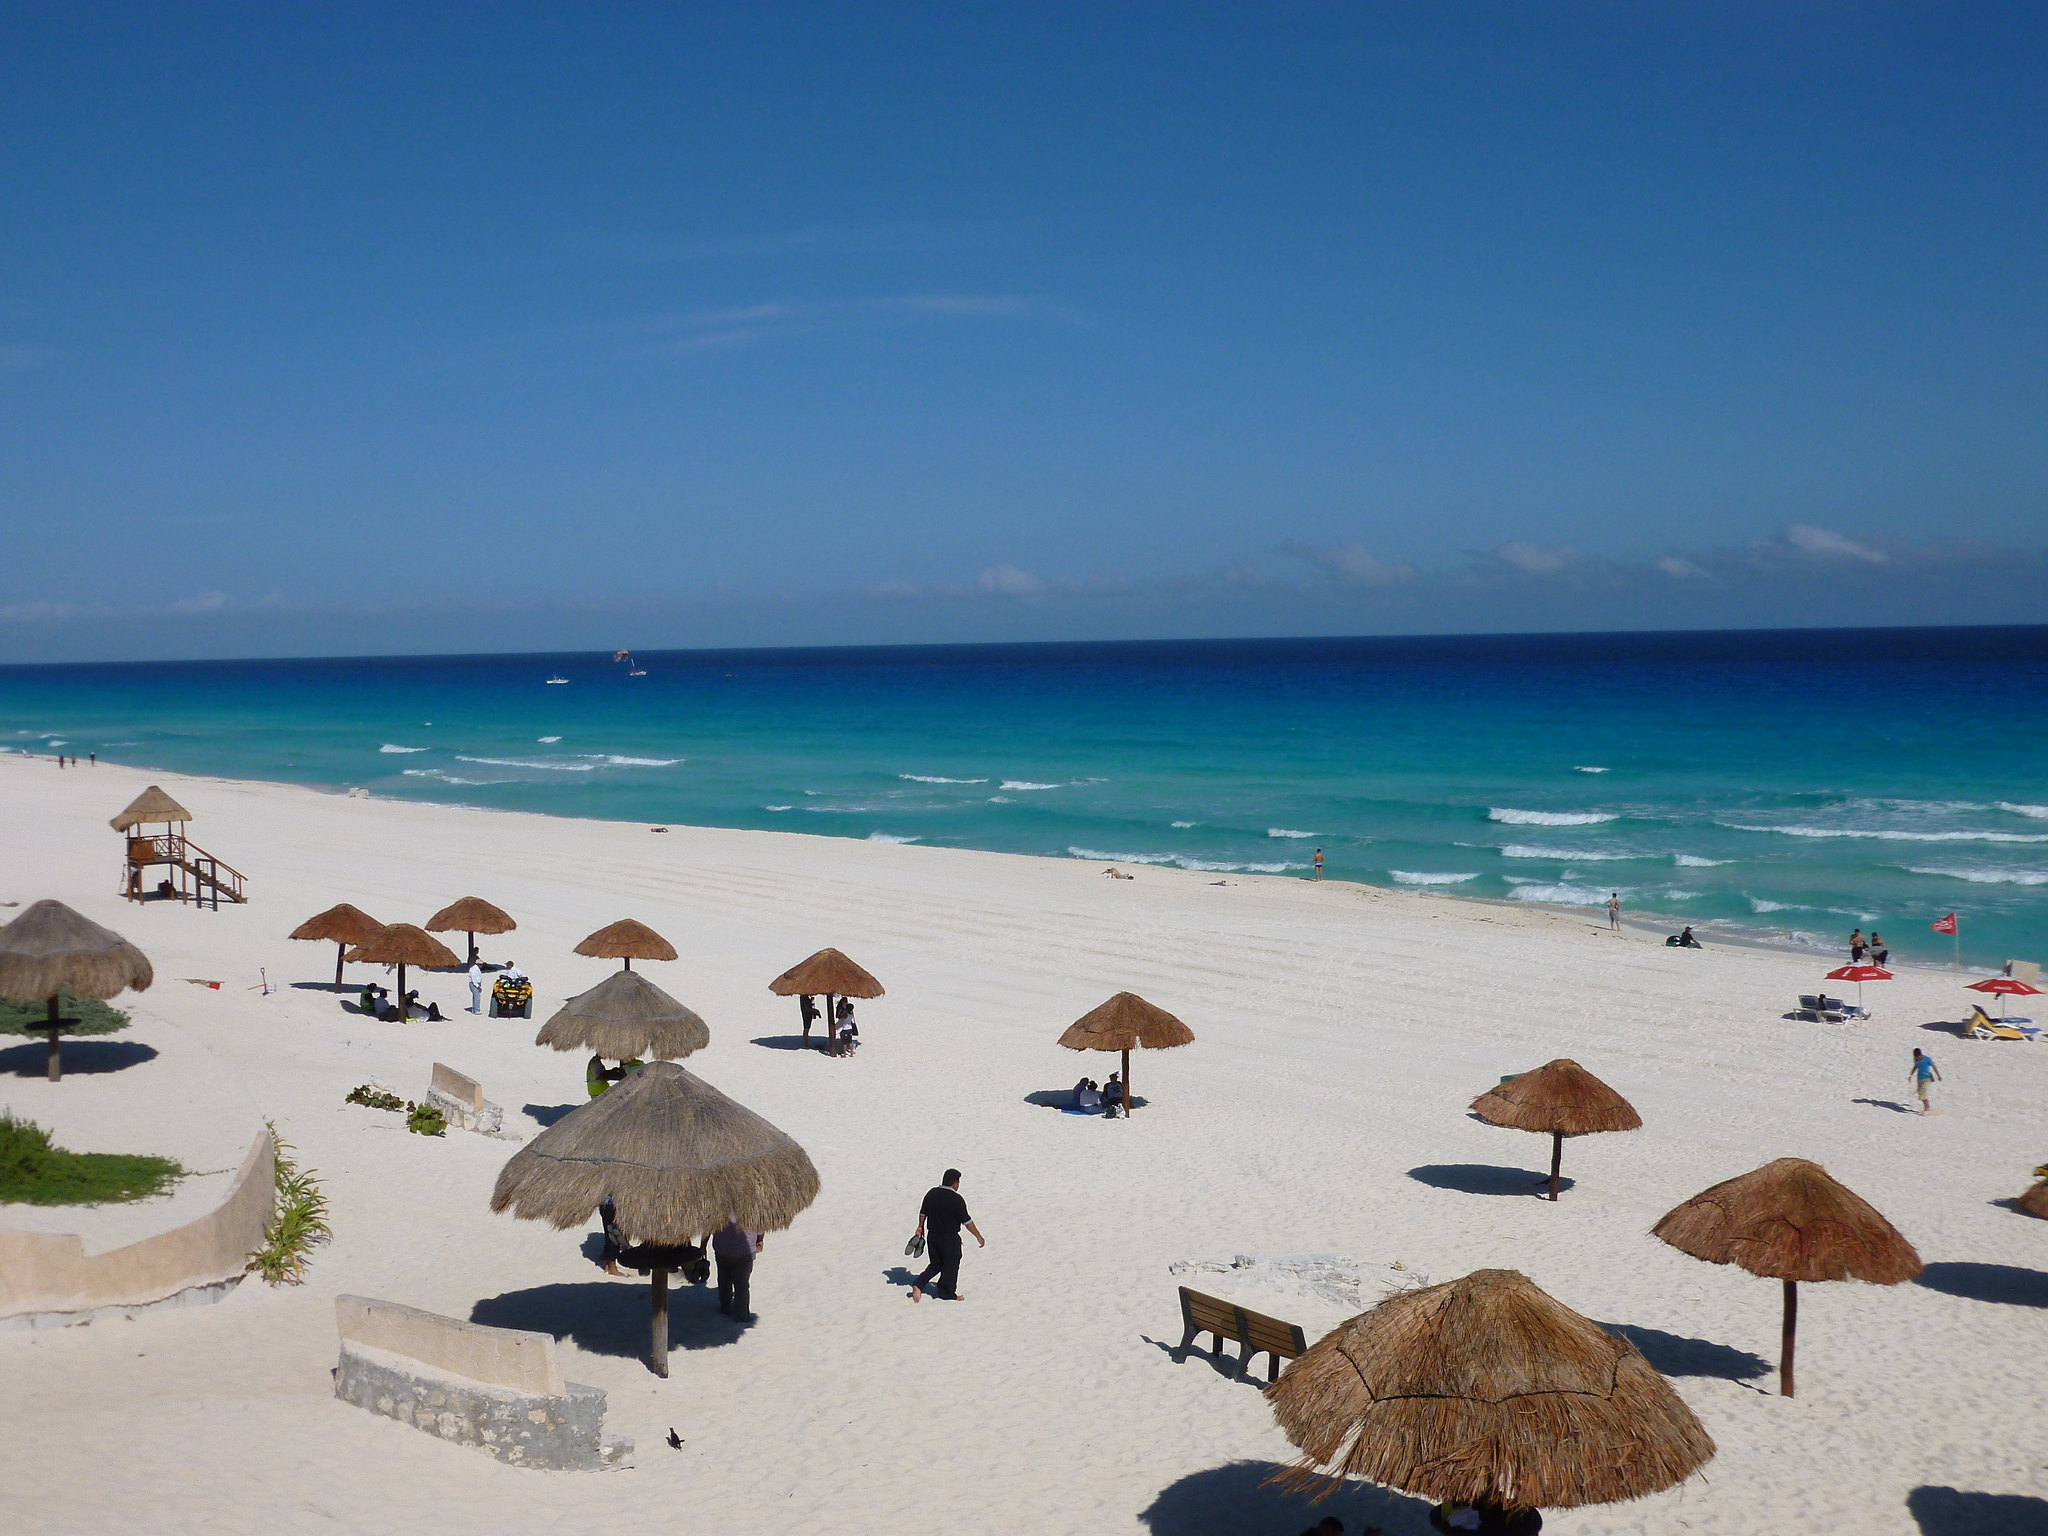 10 Best Things To Do in Cancun, Mexico [with Suggested Tours]